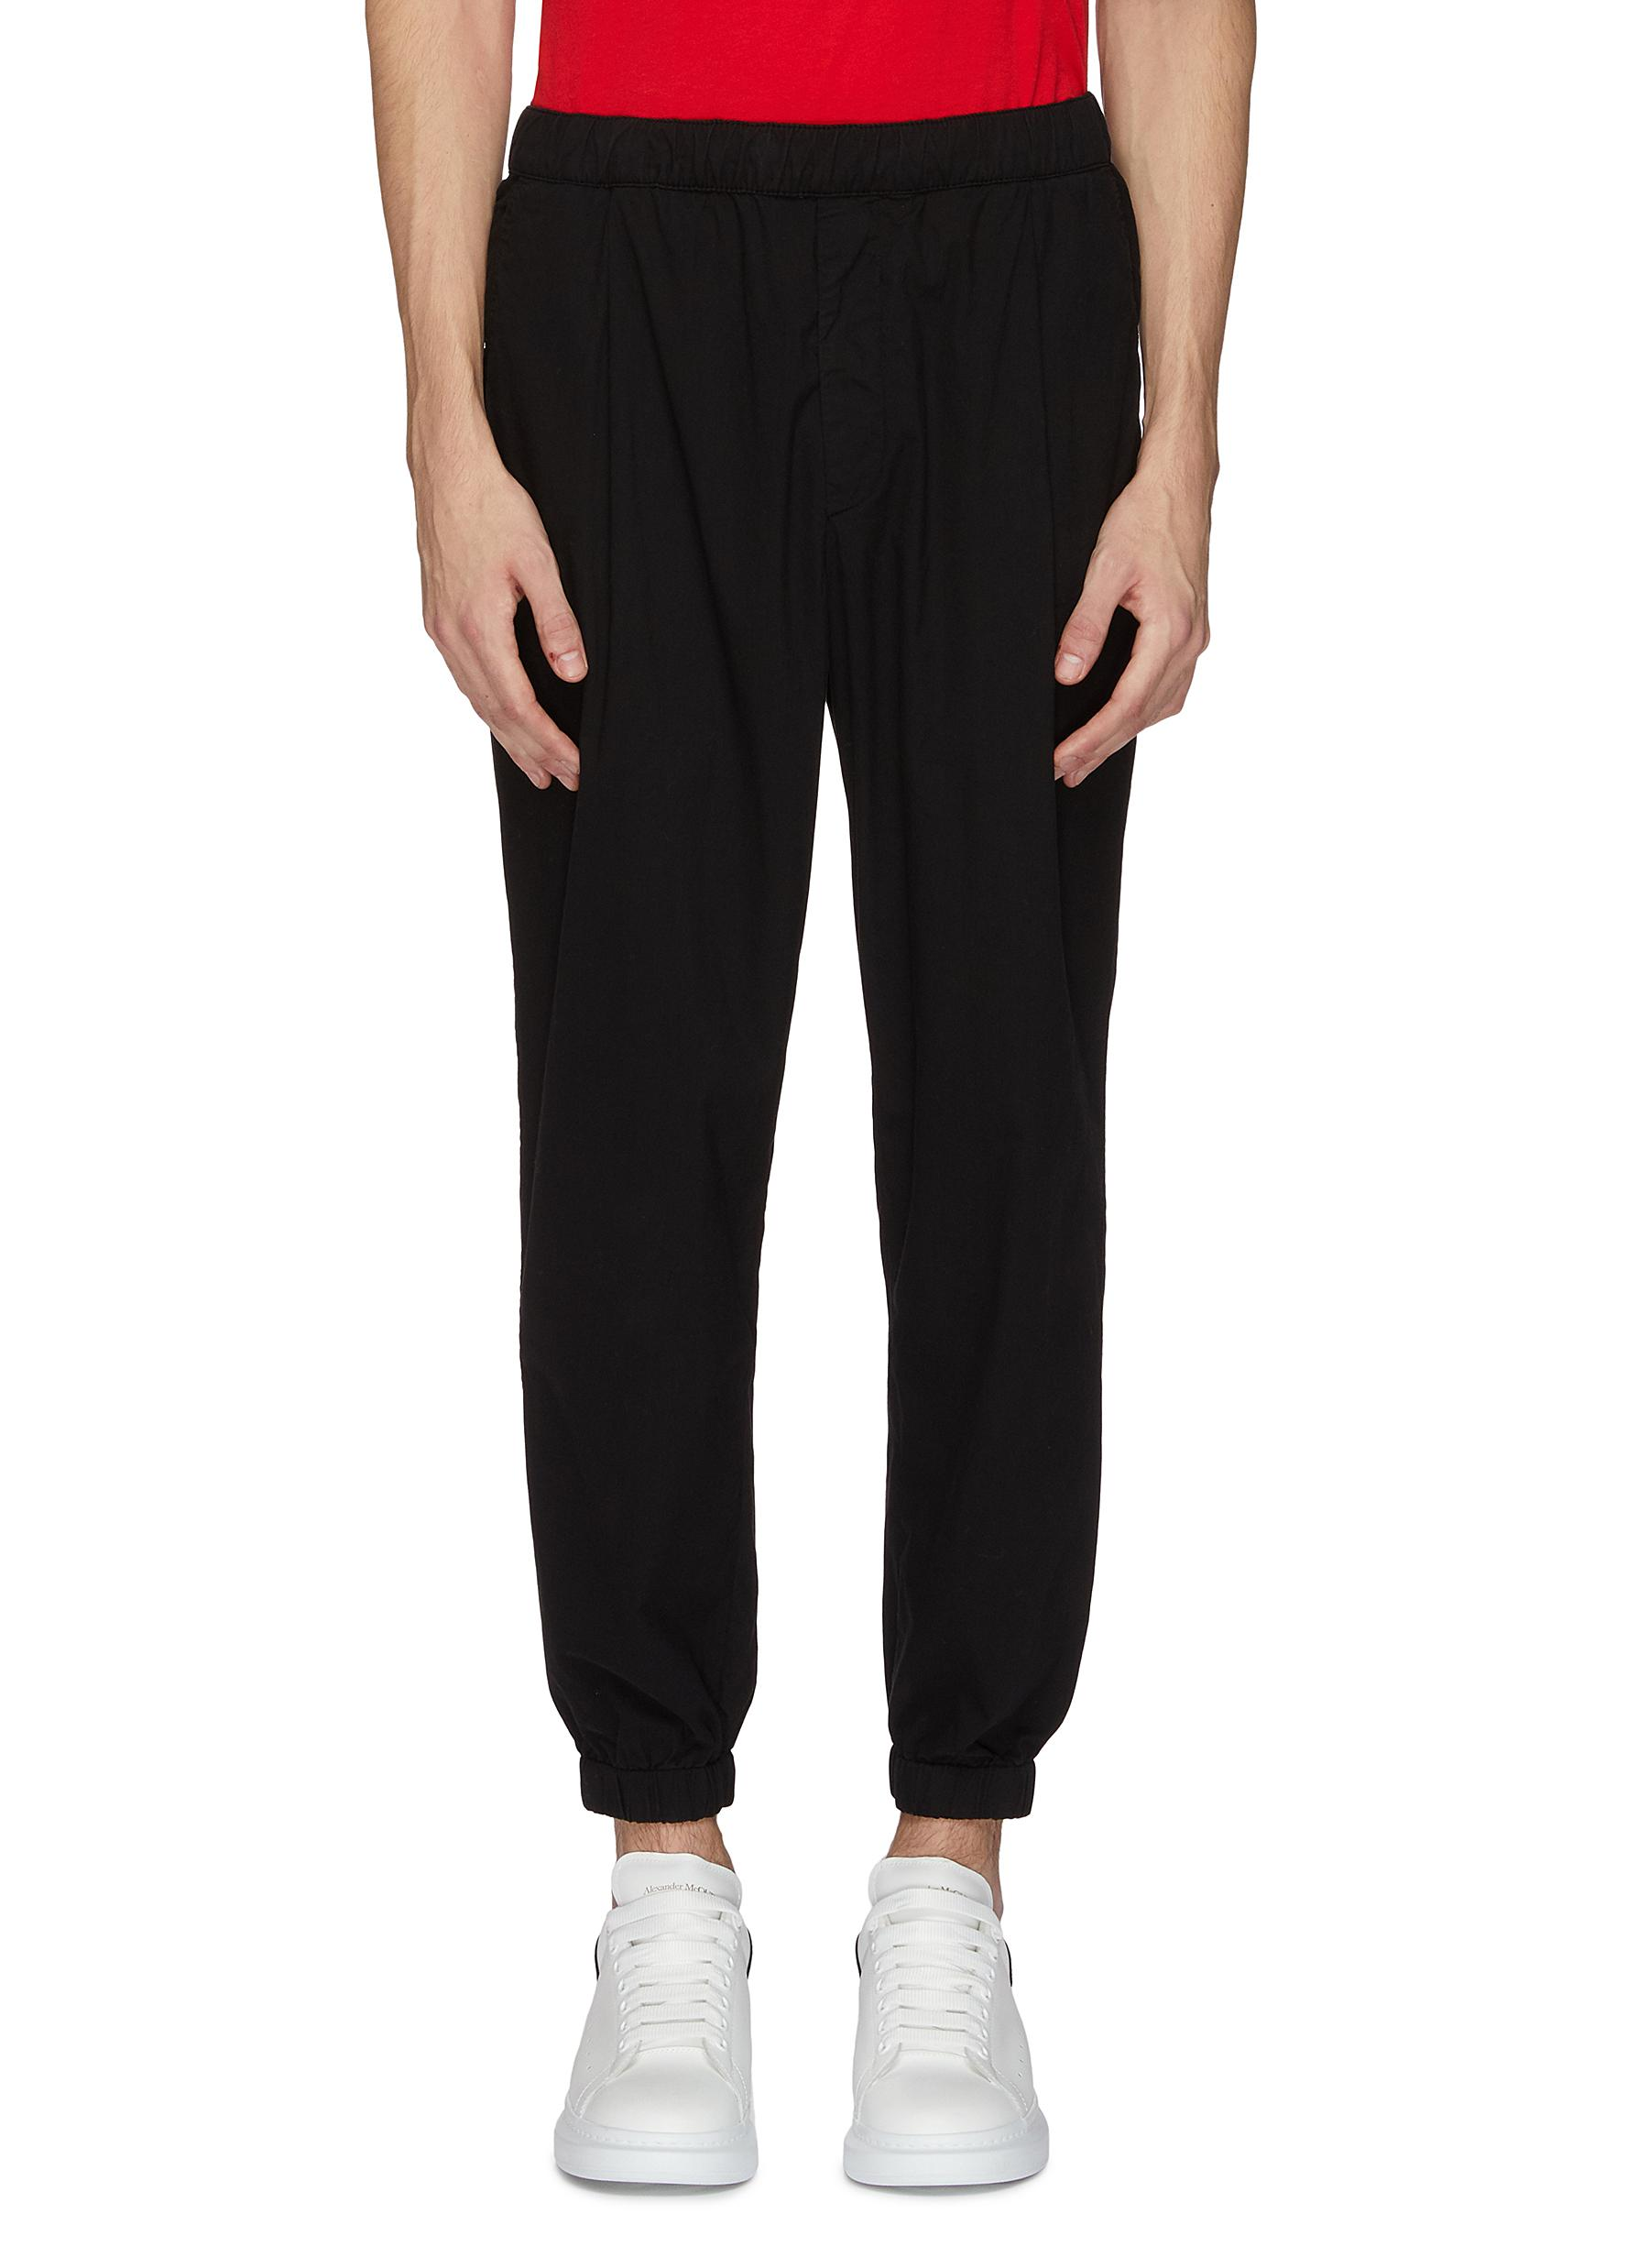 da4911e156d8 Main View - Click To Enlarge - McQ Alexander McQueen - Tapered leg track  pants